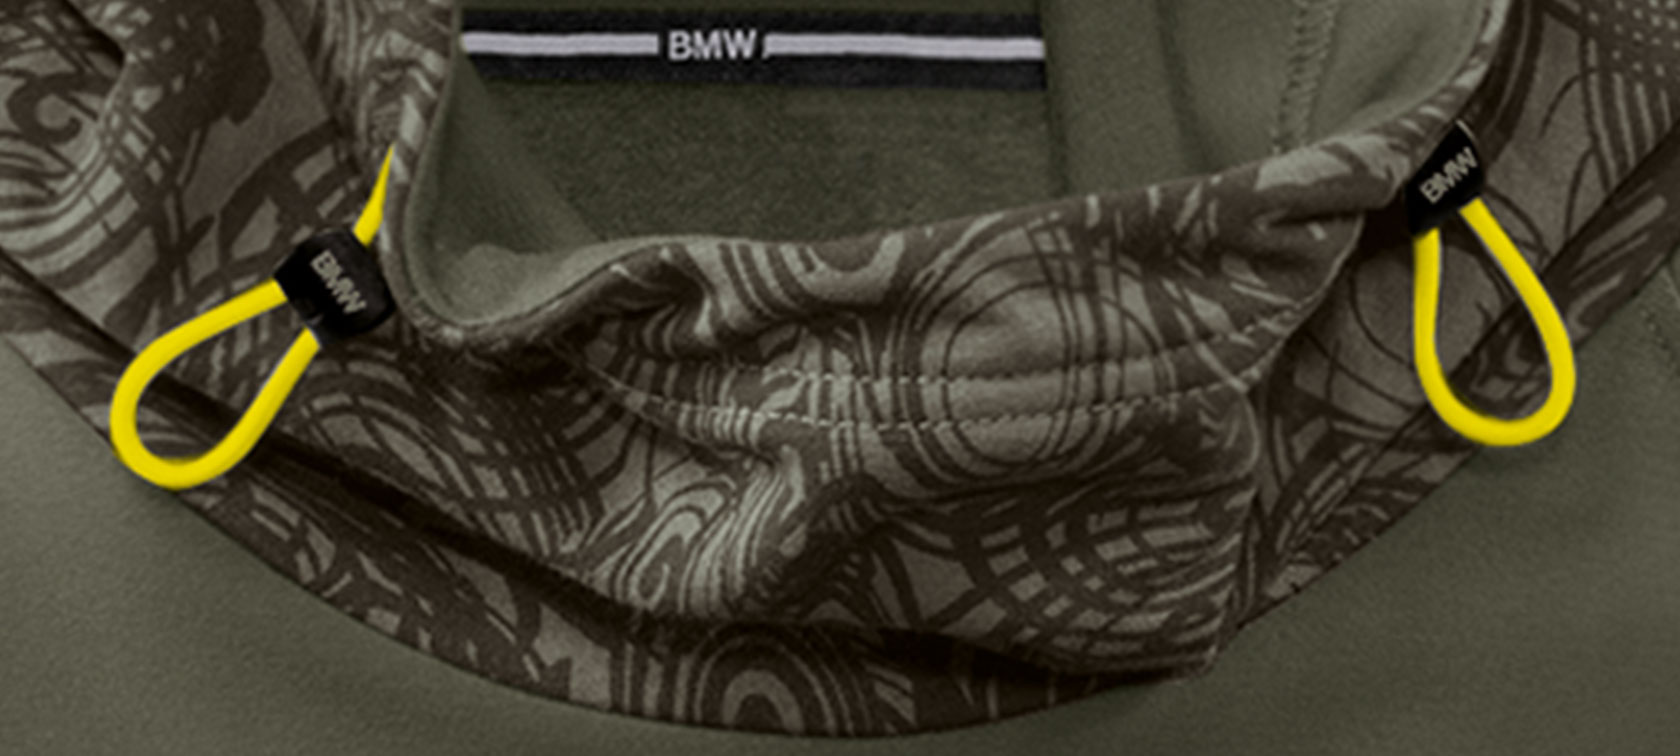 BMW active women's sweatshirt.